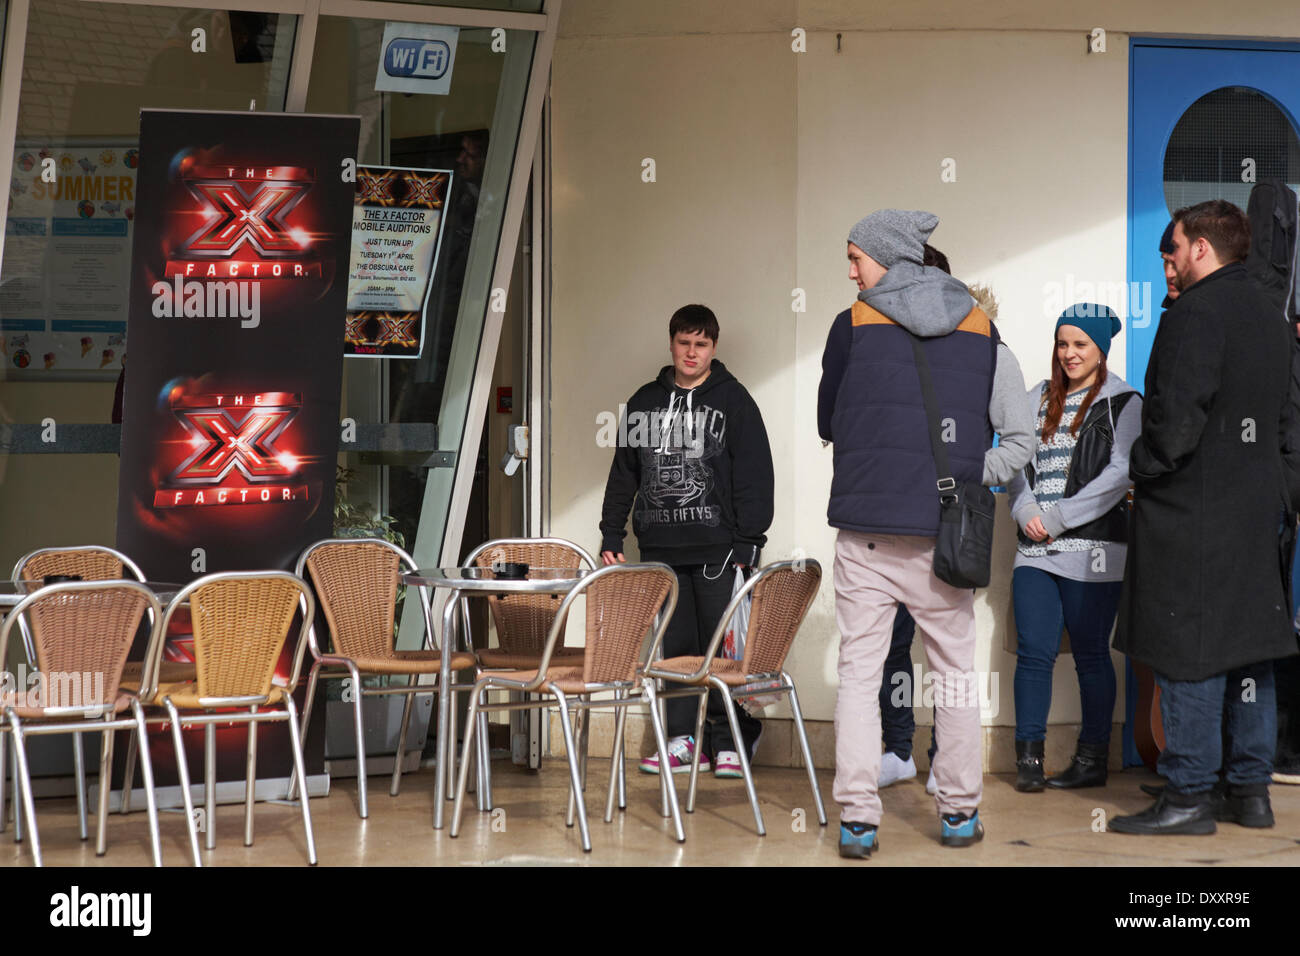 Auditions Stock Photos & Auditions Stock Images - Alamy